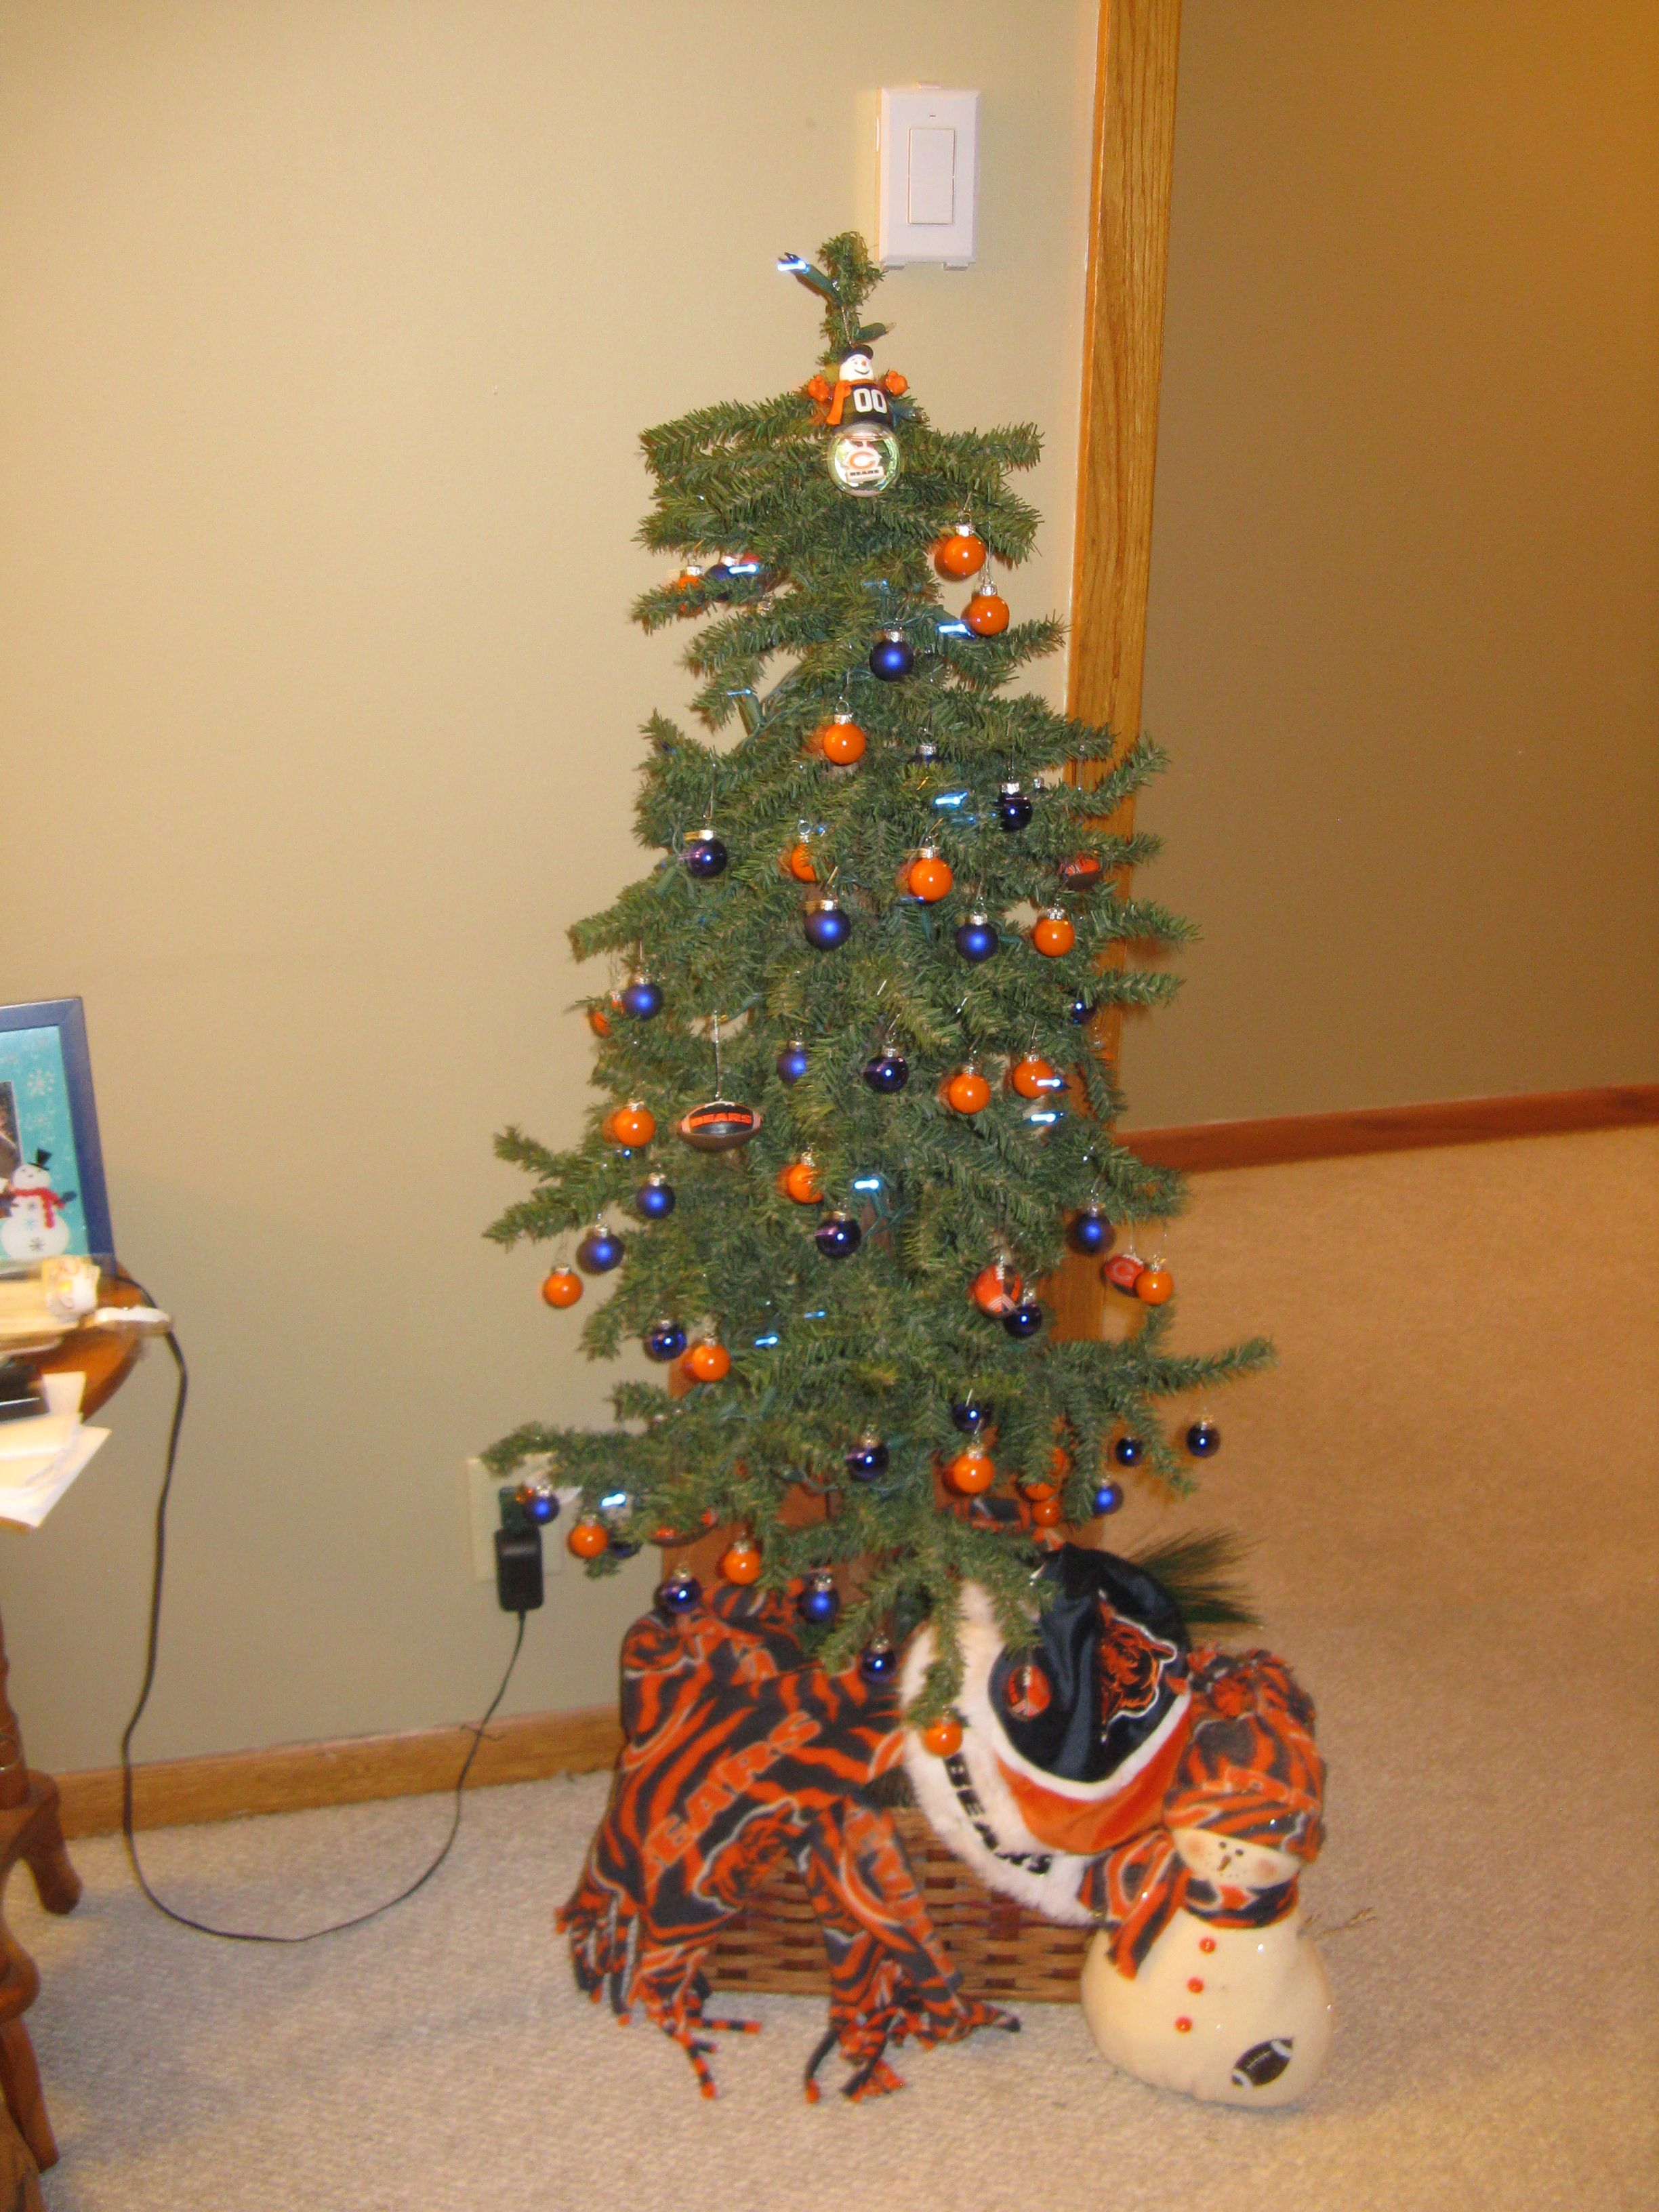 Our Chicago Bears Christmas Tree. We found our blue ornaments at ...